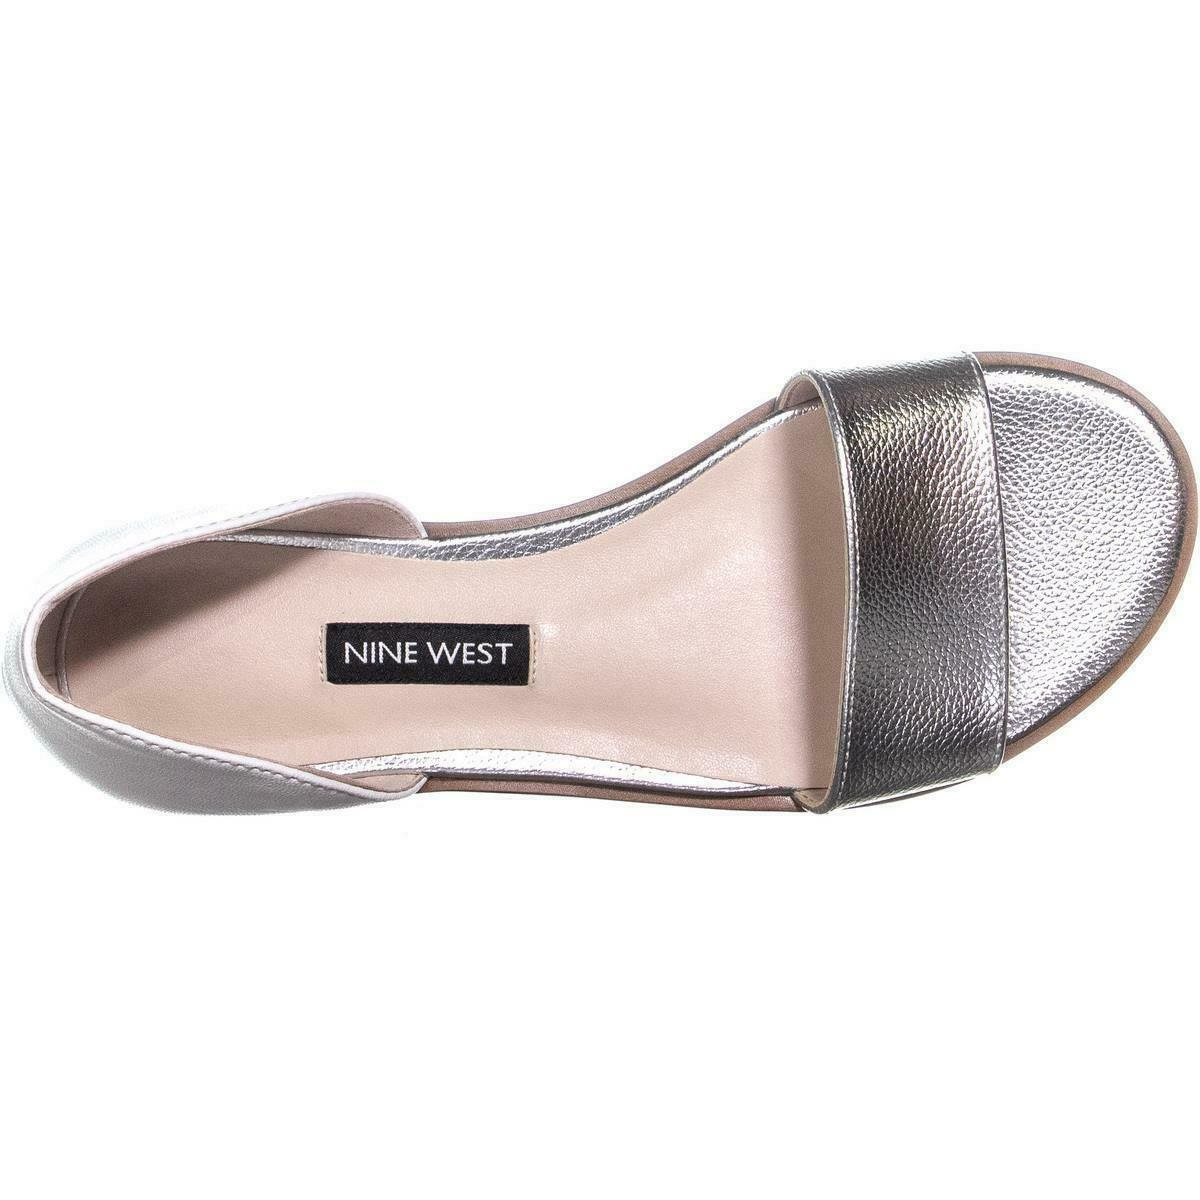 Nine West Maris Slip On Flat Sandals, White/Silver, 5 US